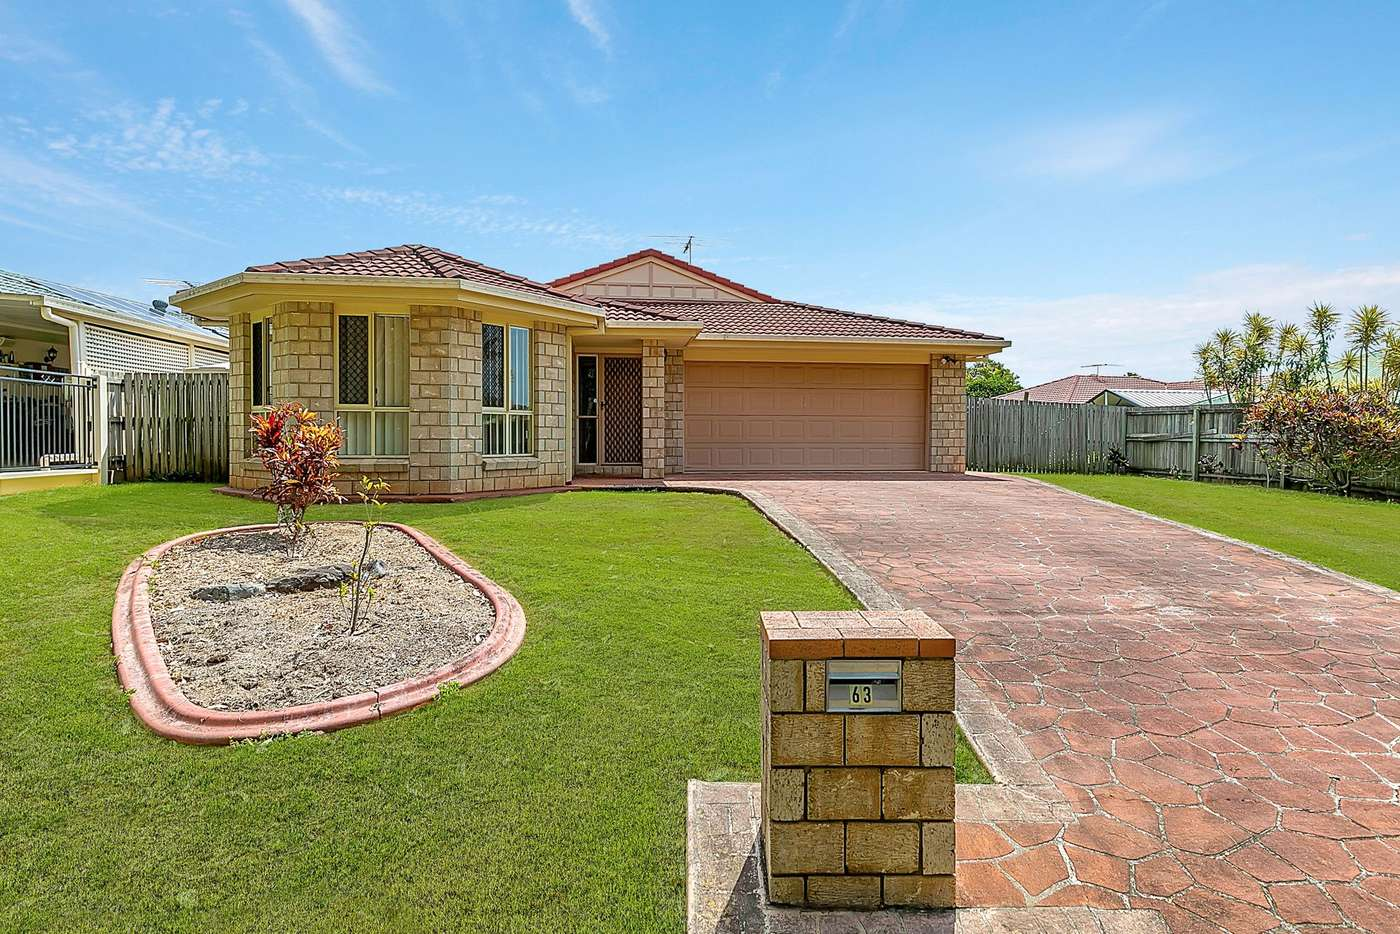 Main view of Homely house listing, 63 Carinyan Drive, Birkdale QLD 4159